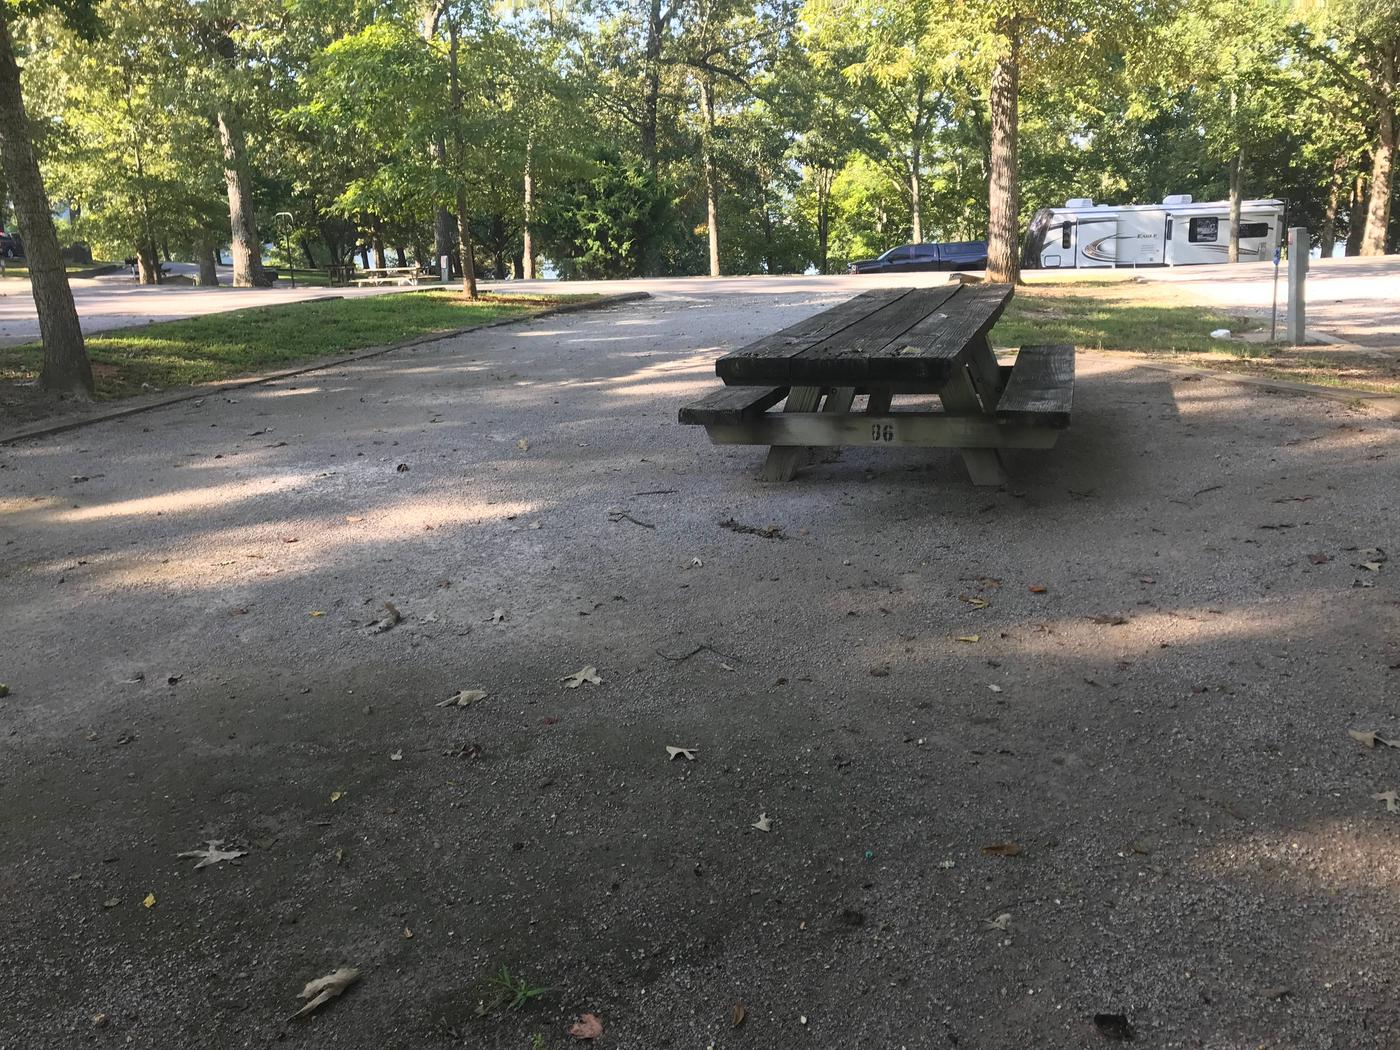 WILLOW GROVE CAMPGROUND SITE #40 TABLEWILLOW GROVE CAMPGROUND SITE #40